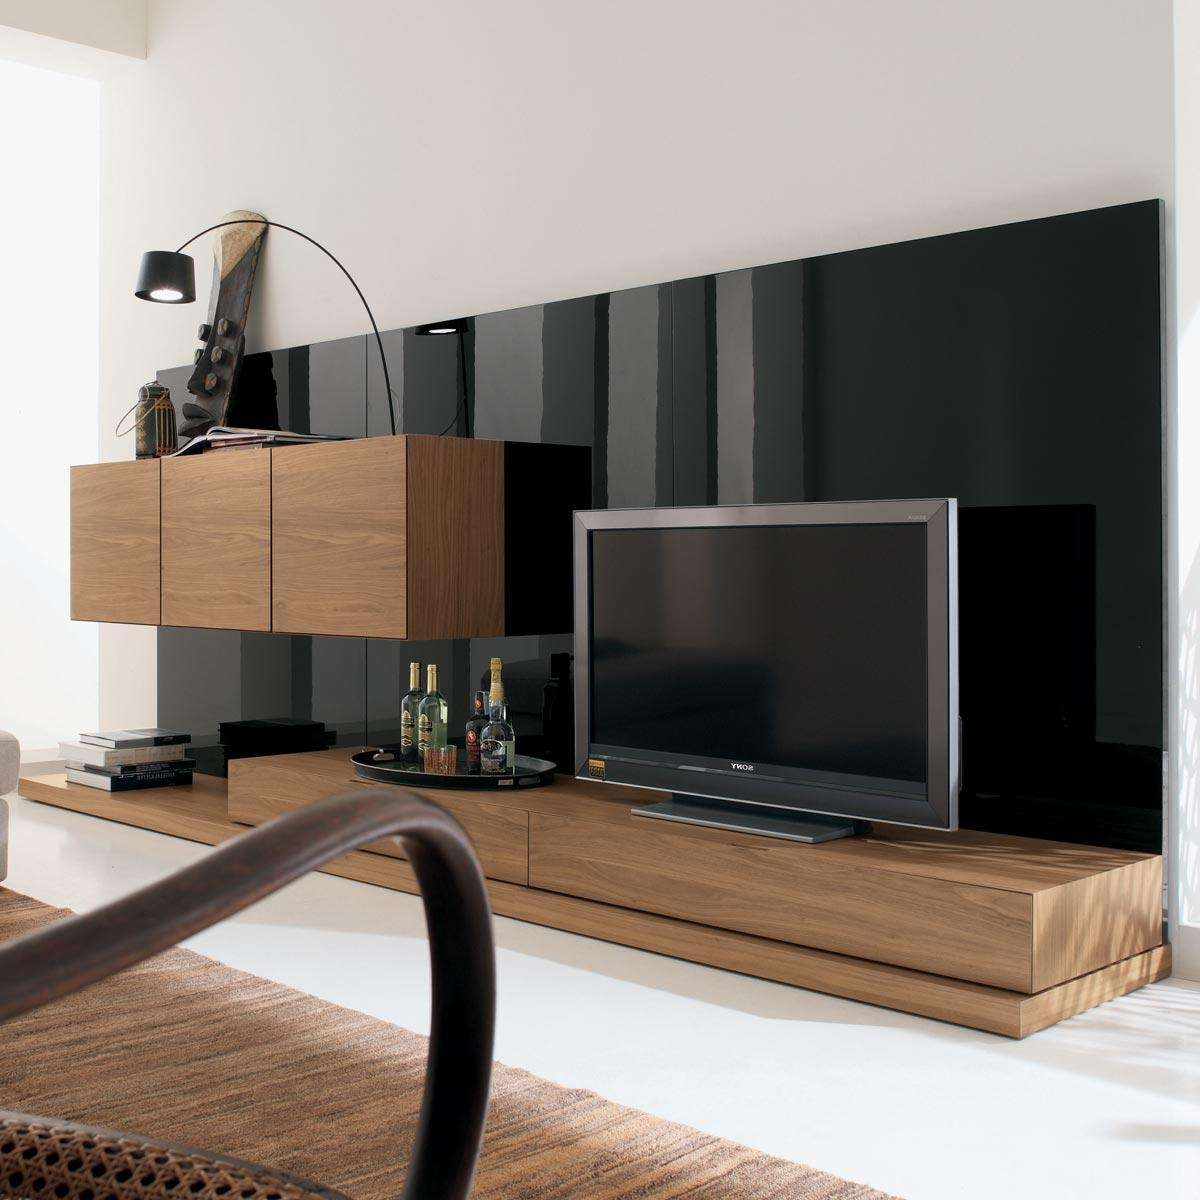 Modern Nature Wood Big Screen Tv Stand Wall Mounted Living Room Intended For Tv Cabinets Contemporary Design (View 18 of 20)